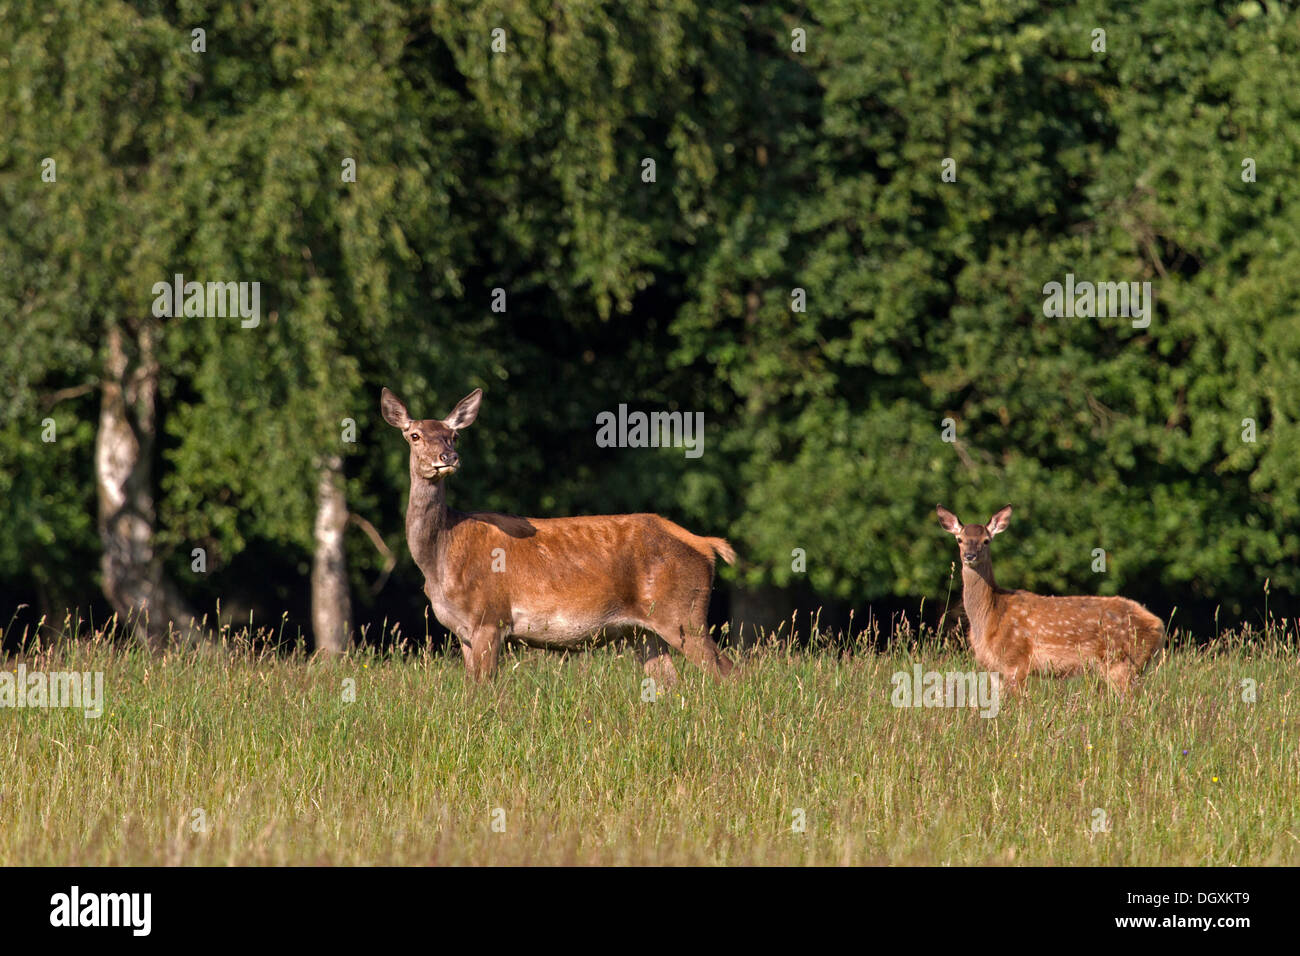 Red deer with young animal / Cervus elaphus Stock Photo